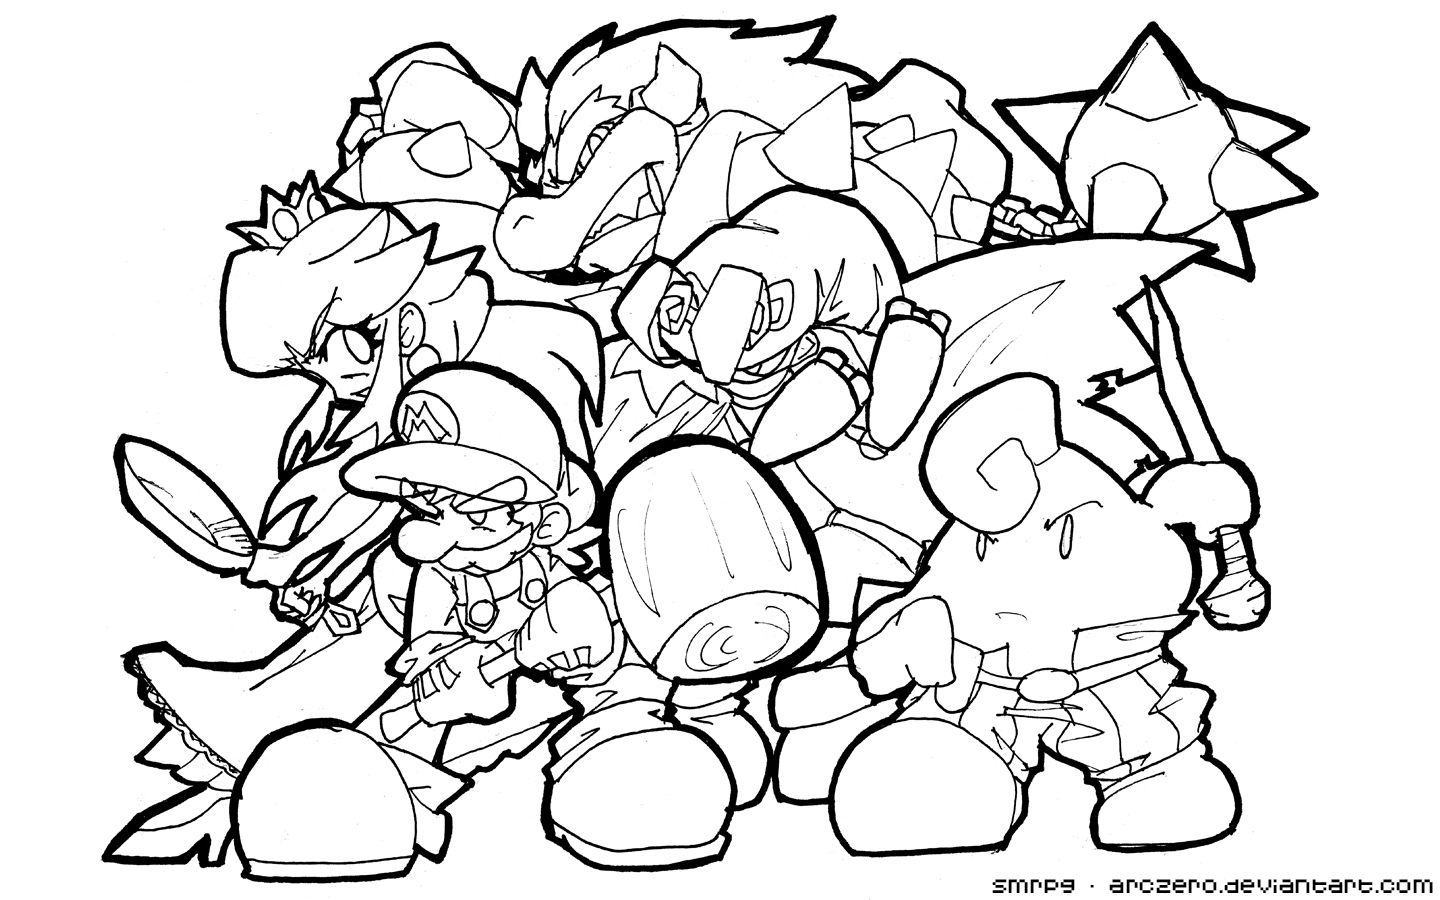 Super Smash Bros Coloring Pages - Coloring Home